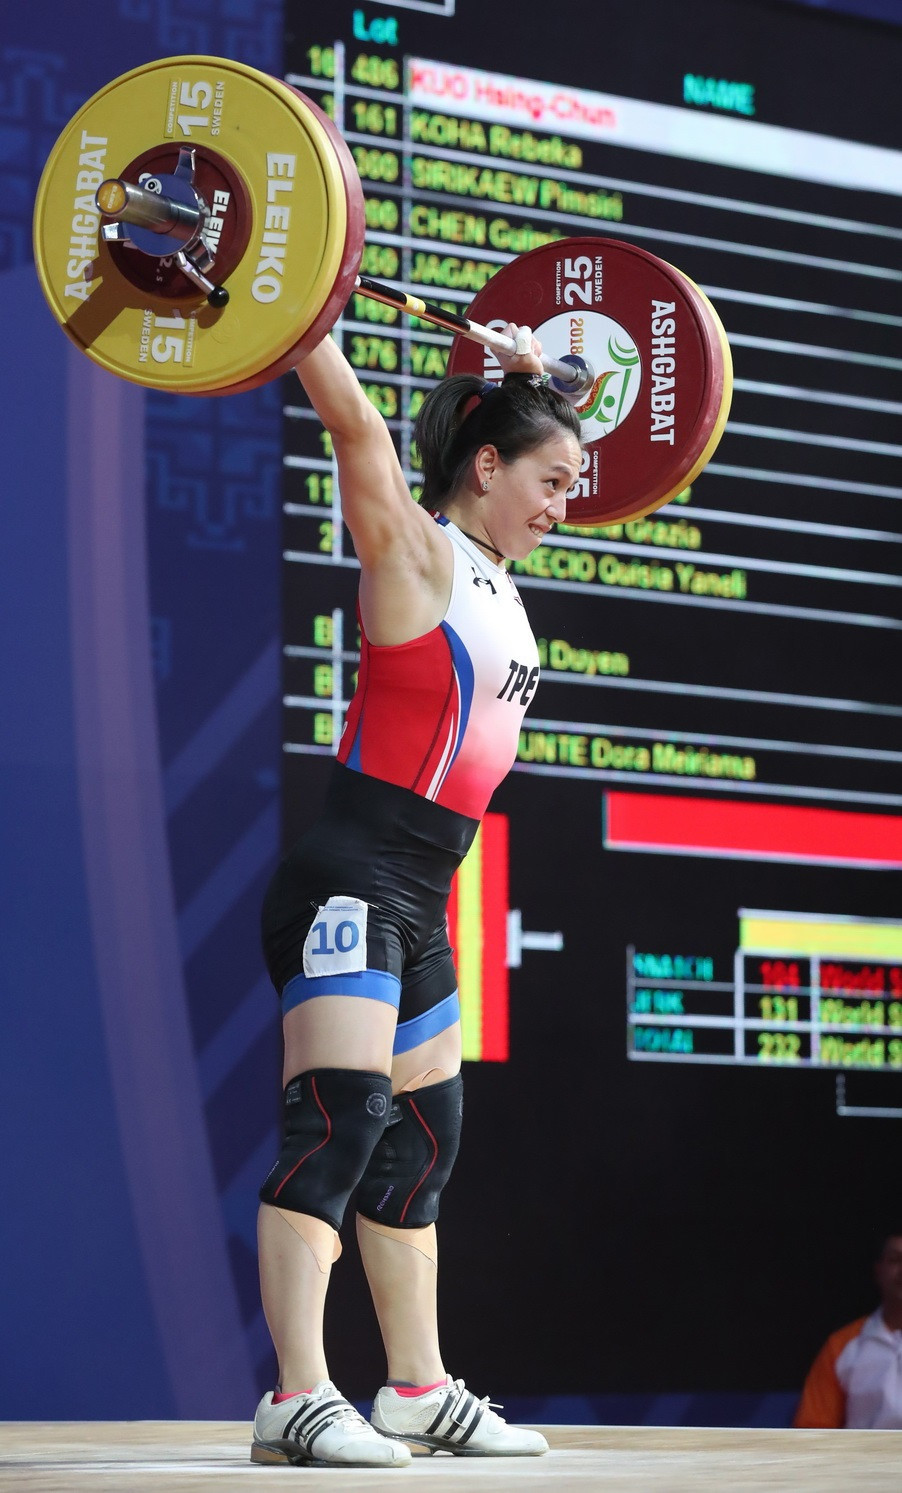 Chinese Taipei's Kuo Hsing-Chun held out for the overall gold medal in the women's 59kg category ©IWF